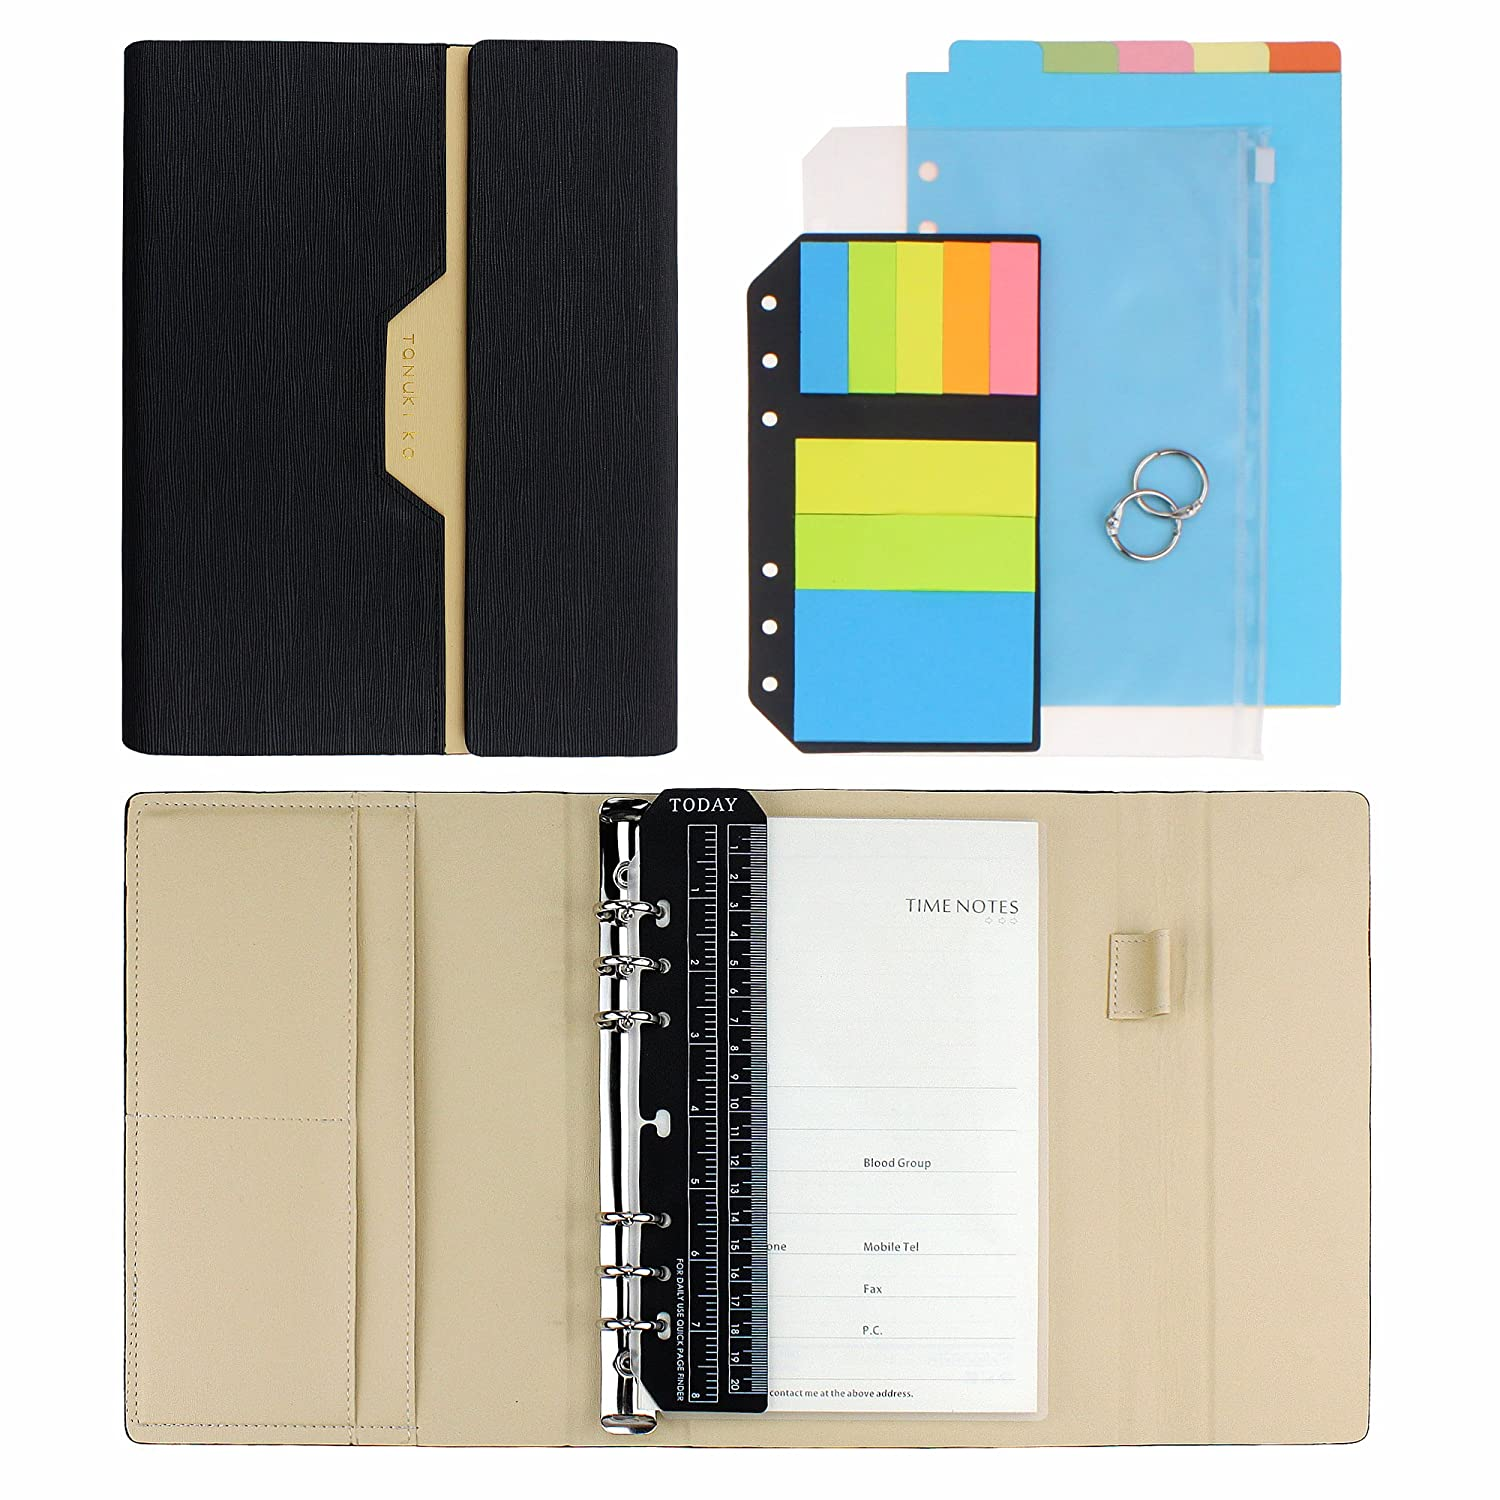 SynLiZy A5 PU Leather Personal Organizer Undated Planner 7.3